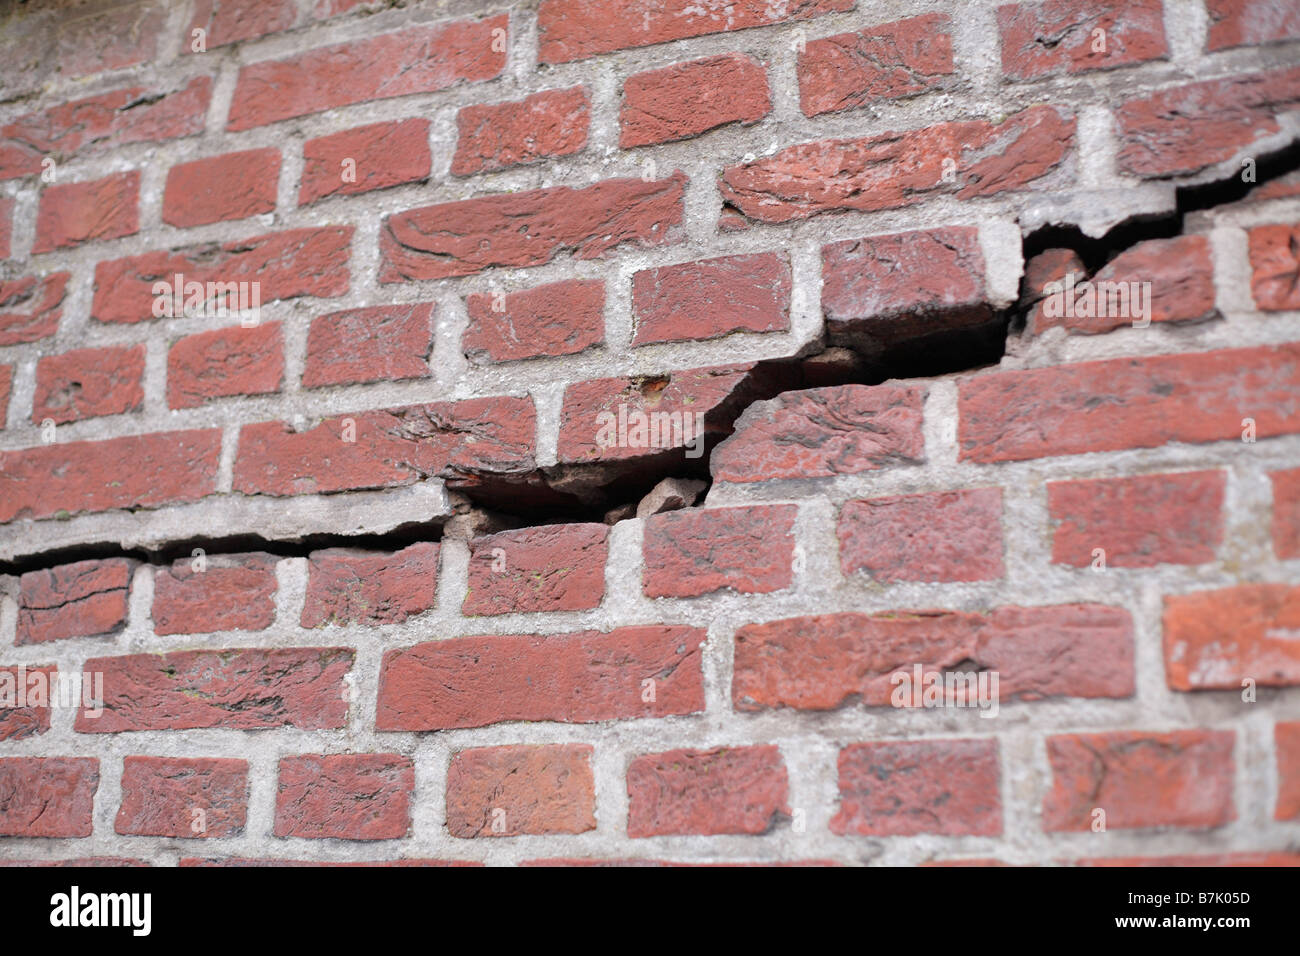 Crack in a brick wall - Stock Image